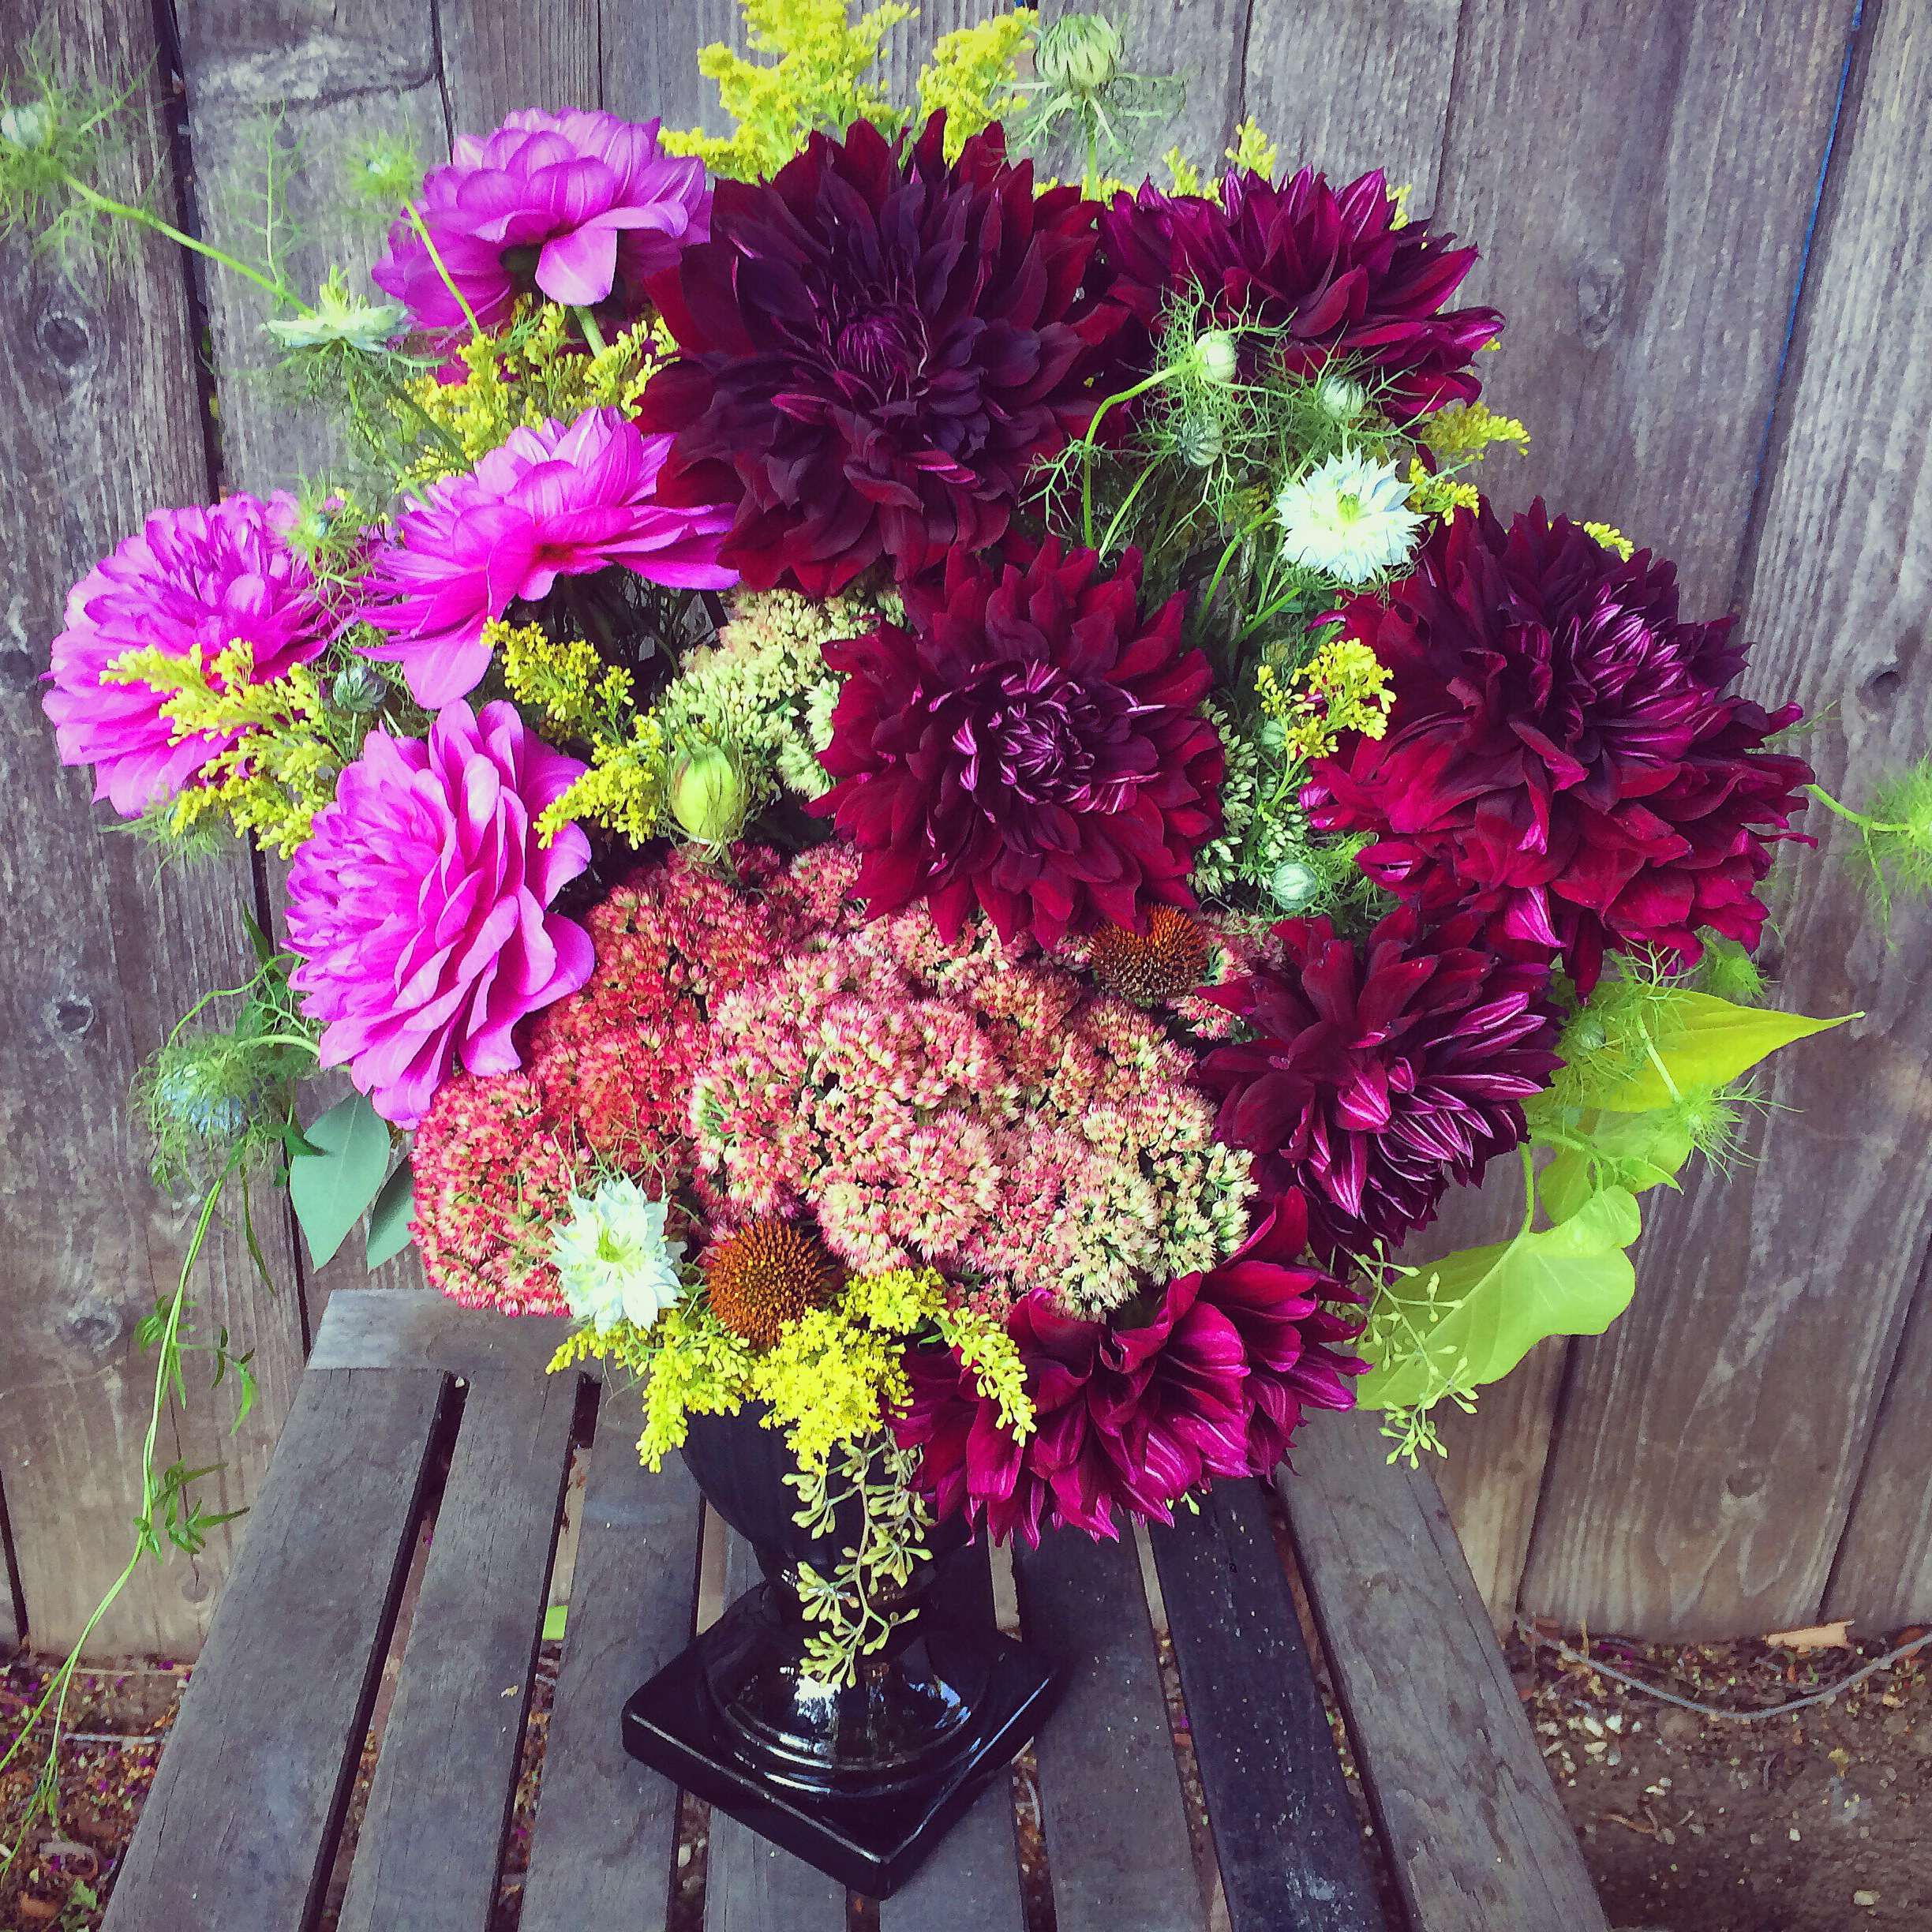 And these dahlias for someone special.